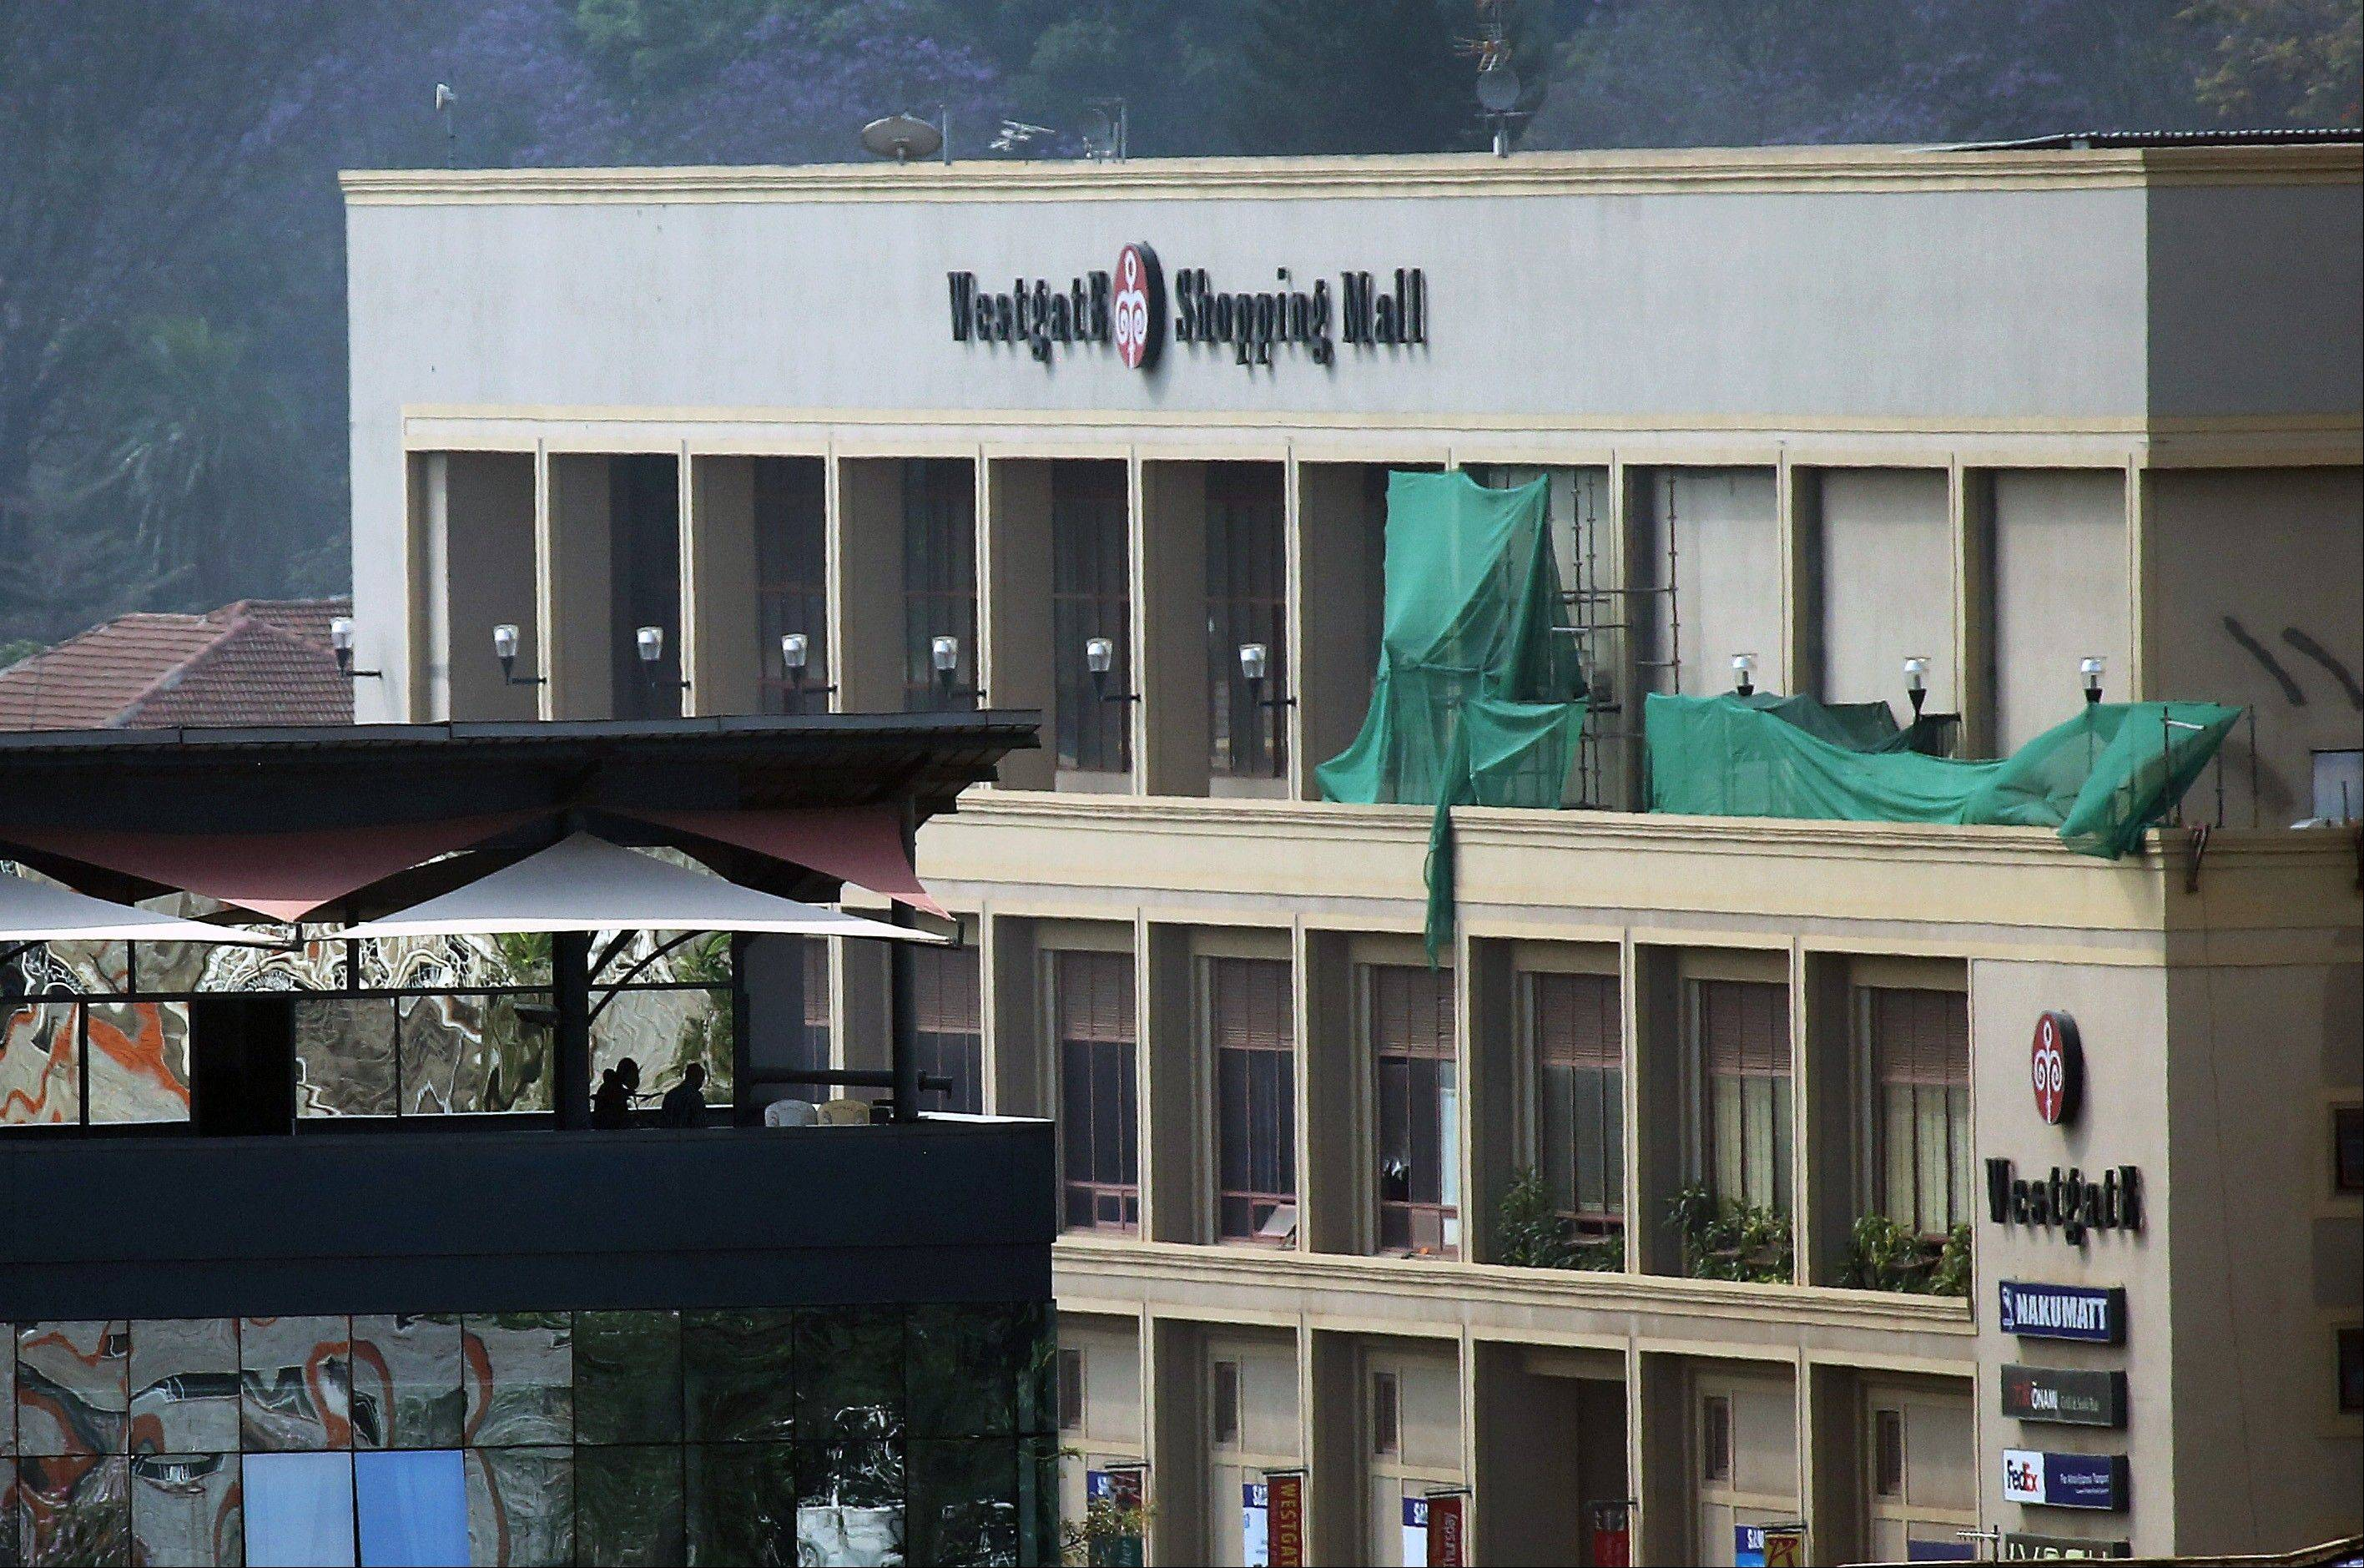 Kenyan security forces stand on the top floor of a building facing the Westgate Mall on Wednesday in Nairobi, Kenya.